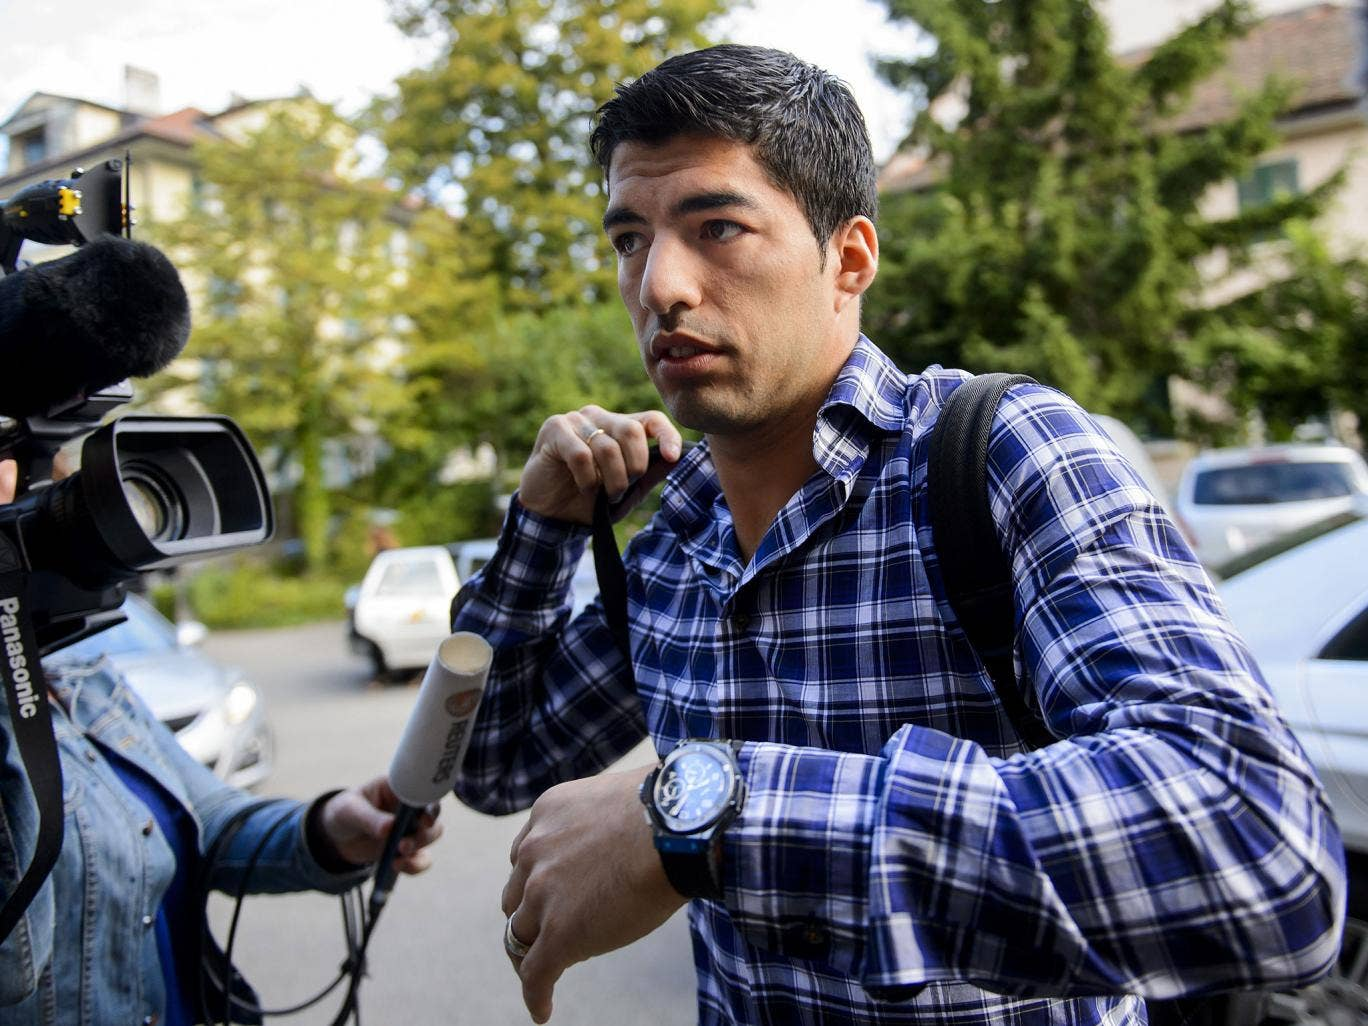 Luis Suarez arrives at the Court of Arbitration for Sport to argue his case over his four-month ban